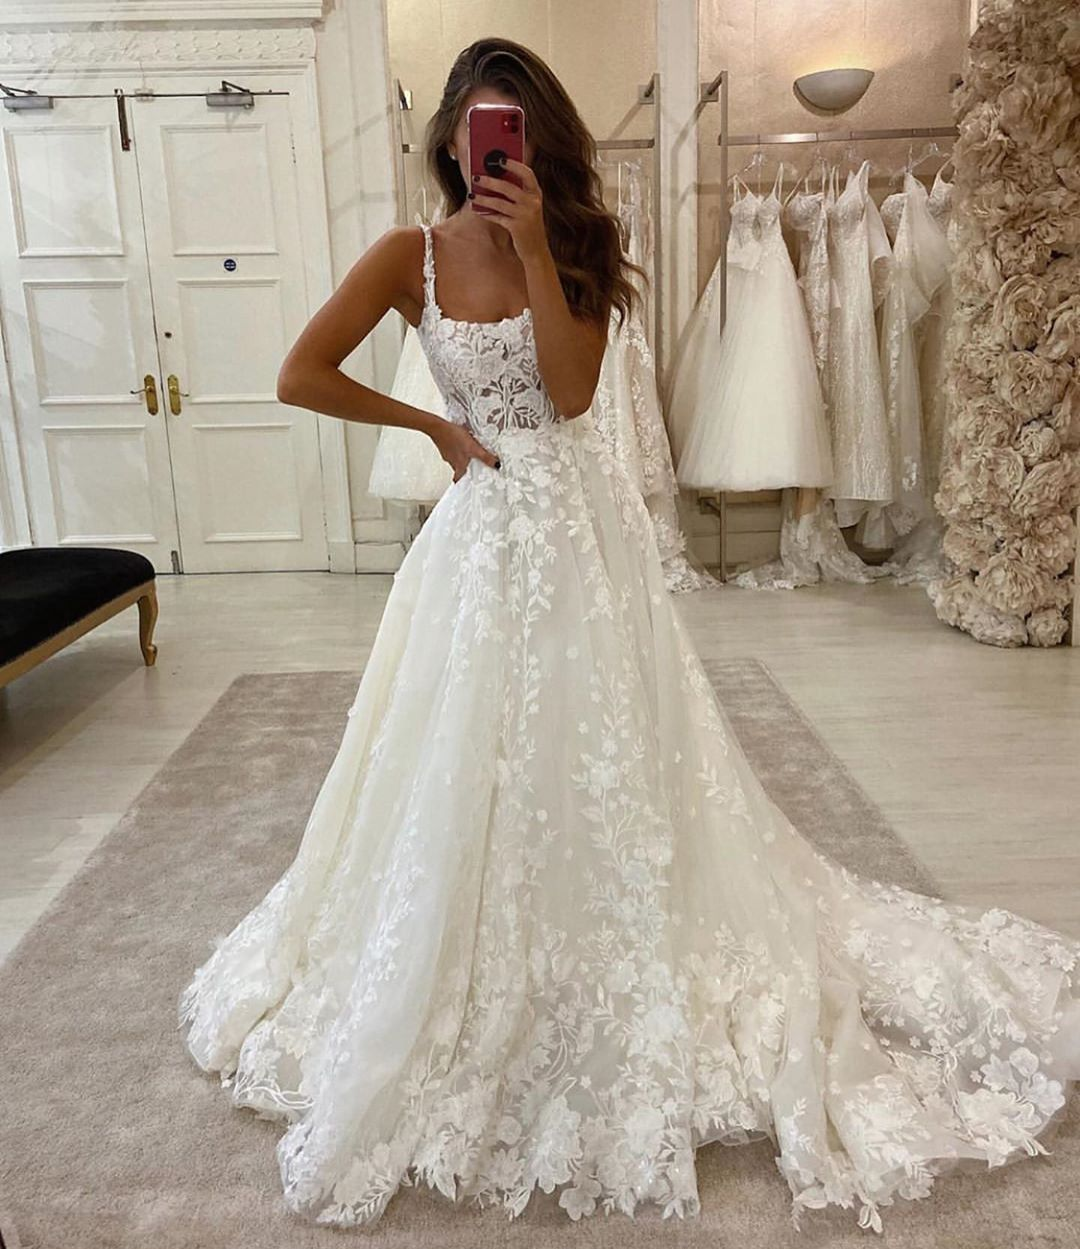 Just Wedding Bells On Instagram Which Dress 1 2 3 Or 4 Dresses By Martinalianabridal F In 2020 Wedding Dresses Lace Ball Gowns Wedding Wedding Dresses